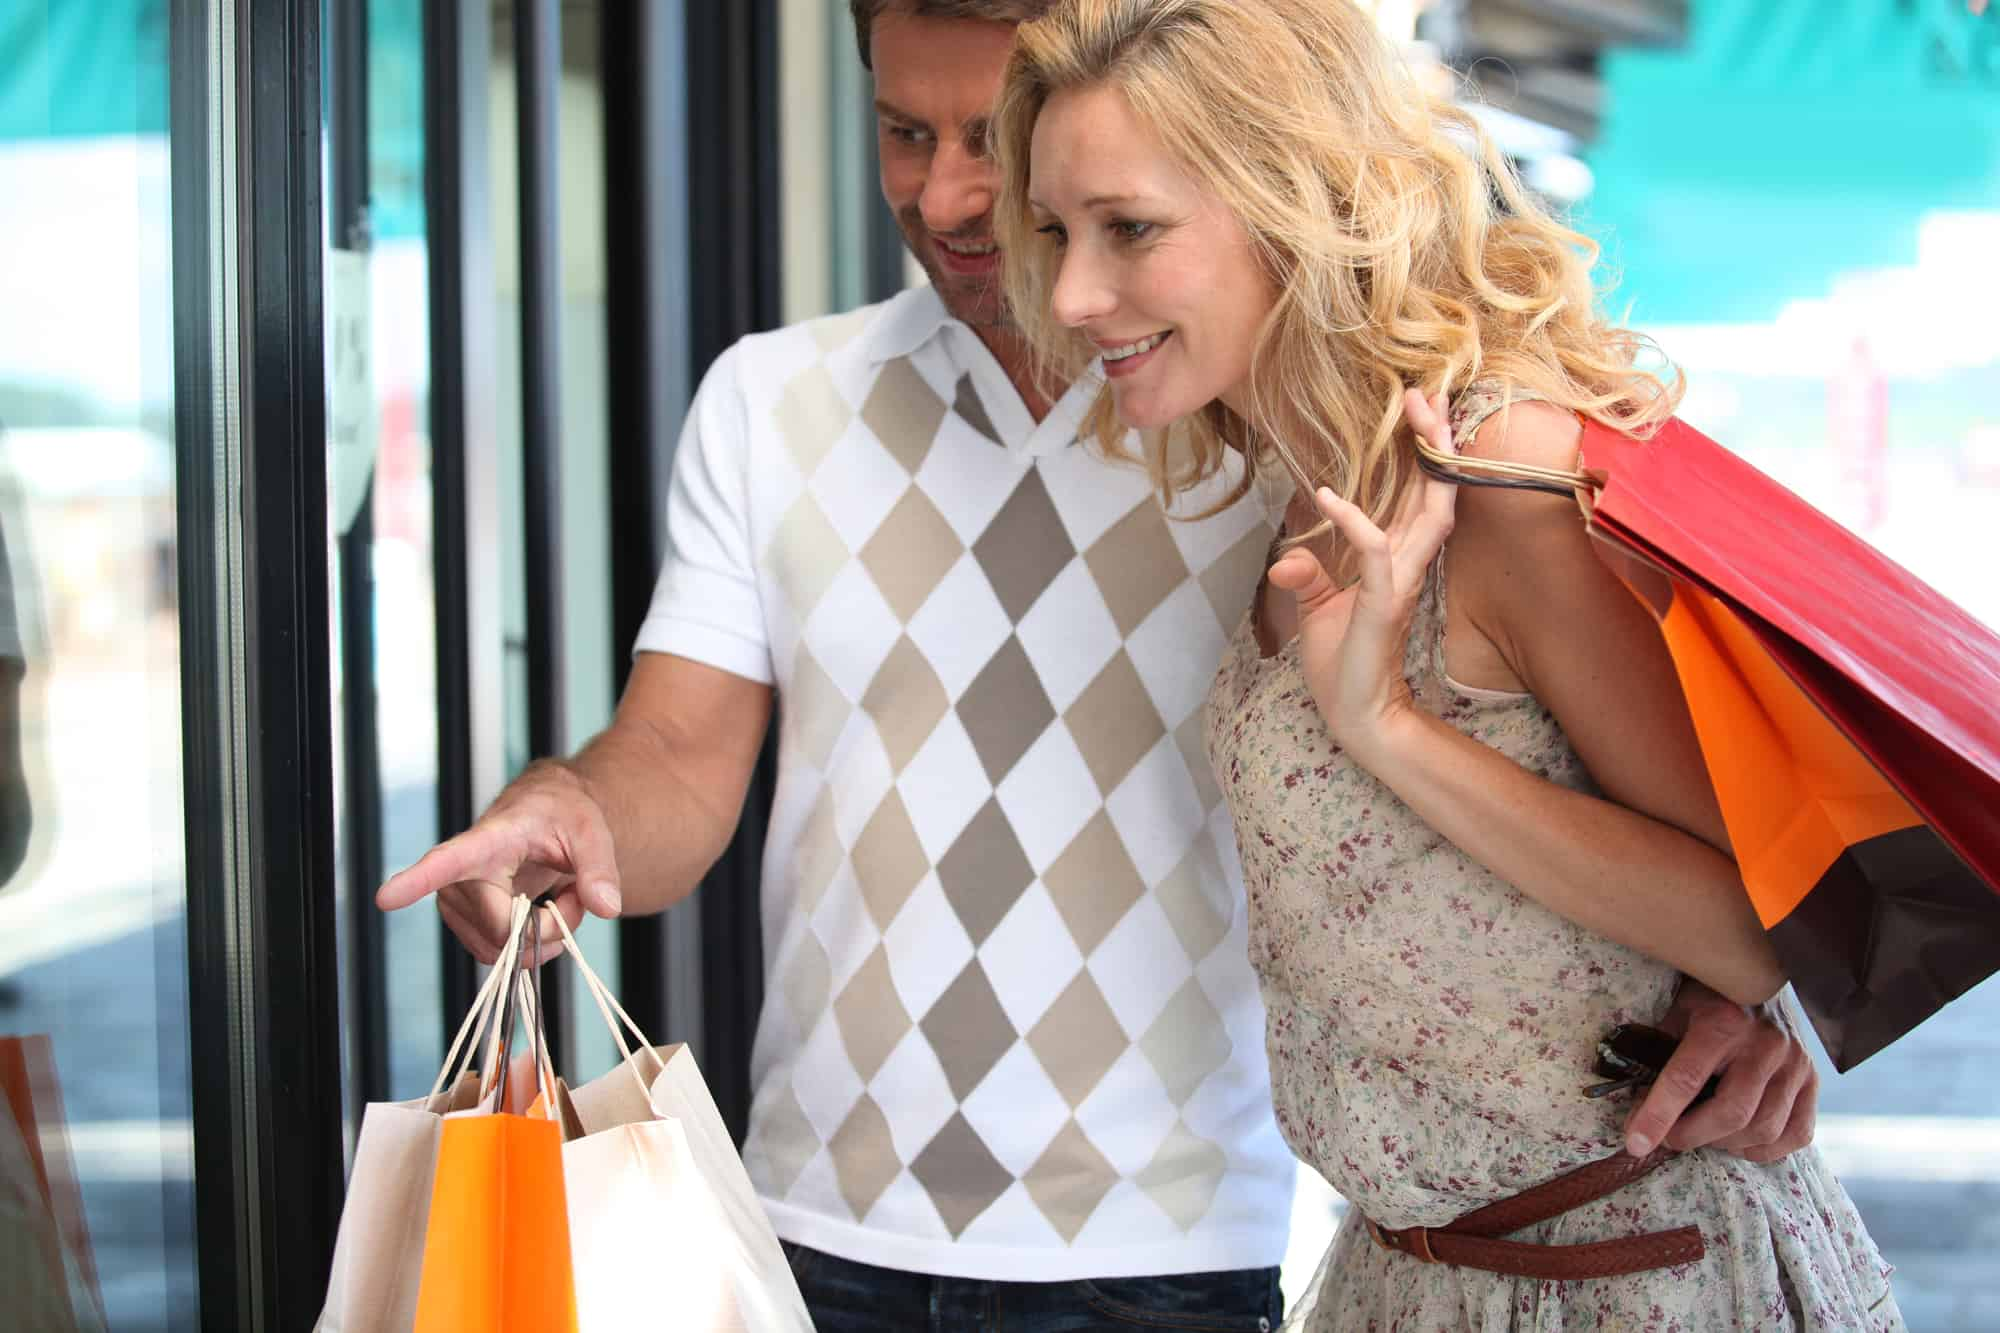 New research suggests improved skills could save the high street